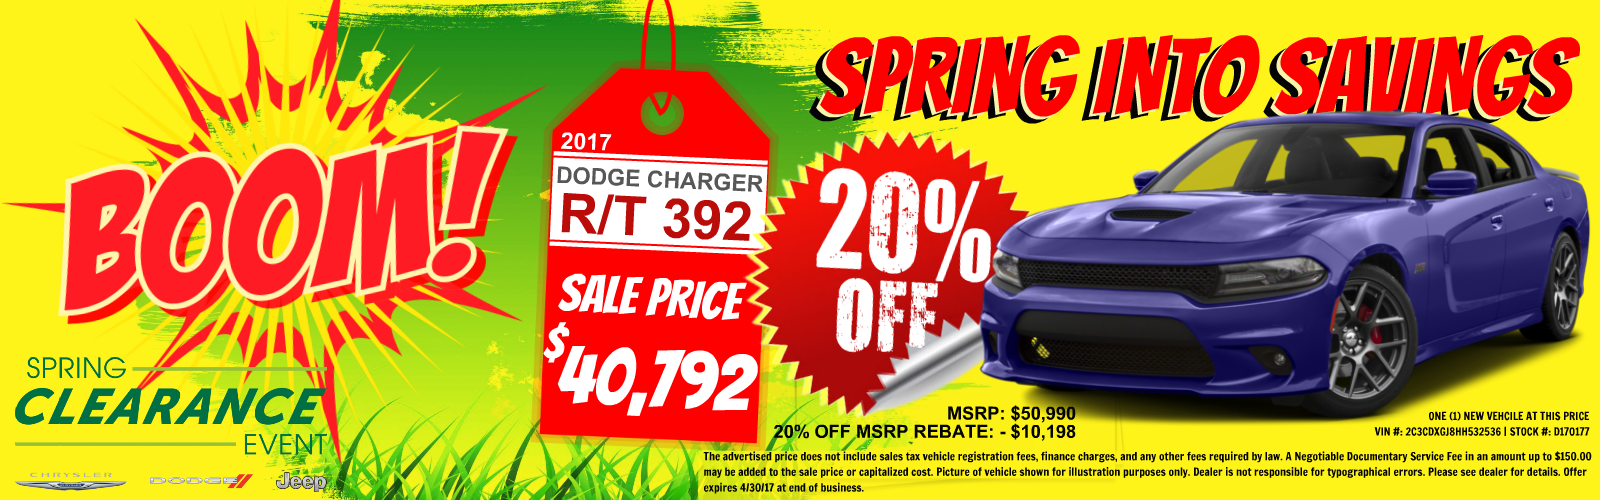 Charger 20% off MSRP at Tacoma Dodge